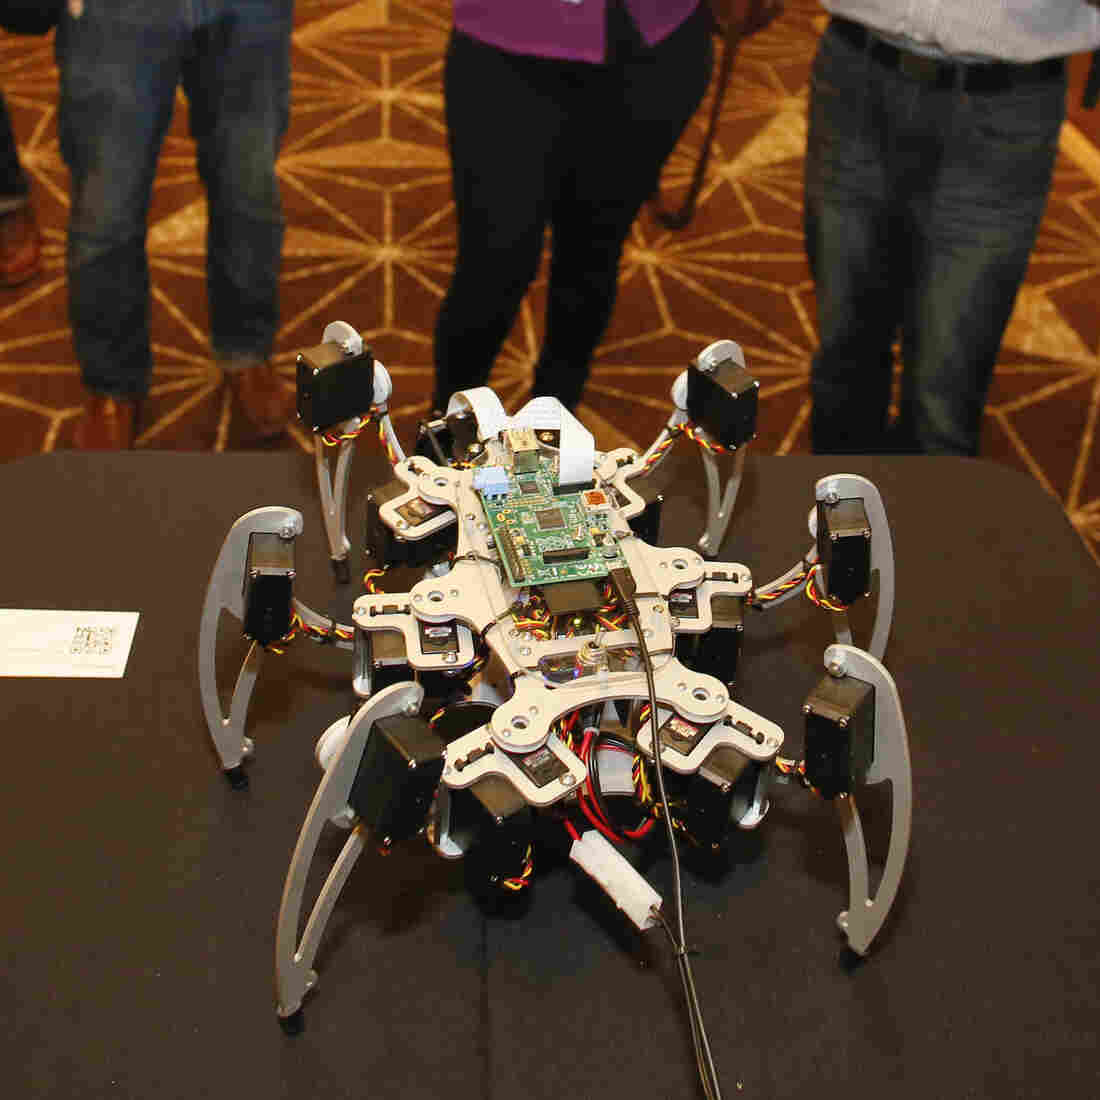 SXSW Debuts Robot Petting Zoo For A Personal Peek Into The Future